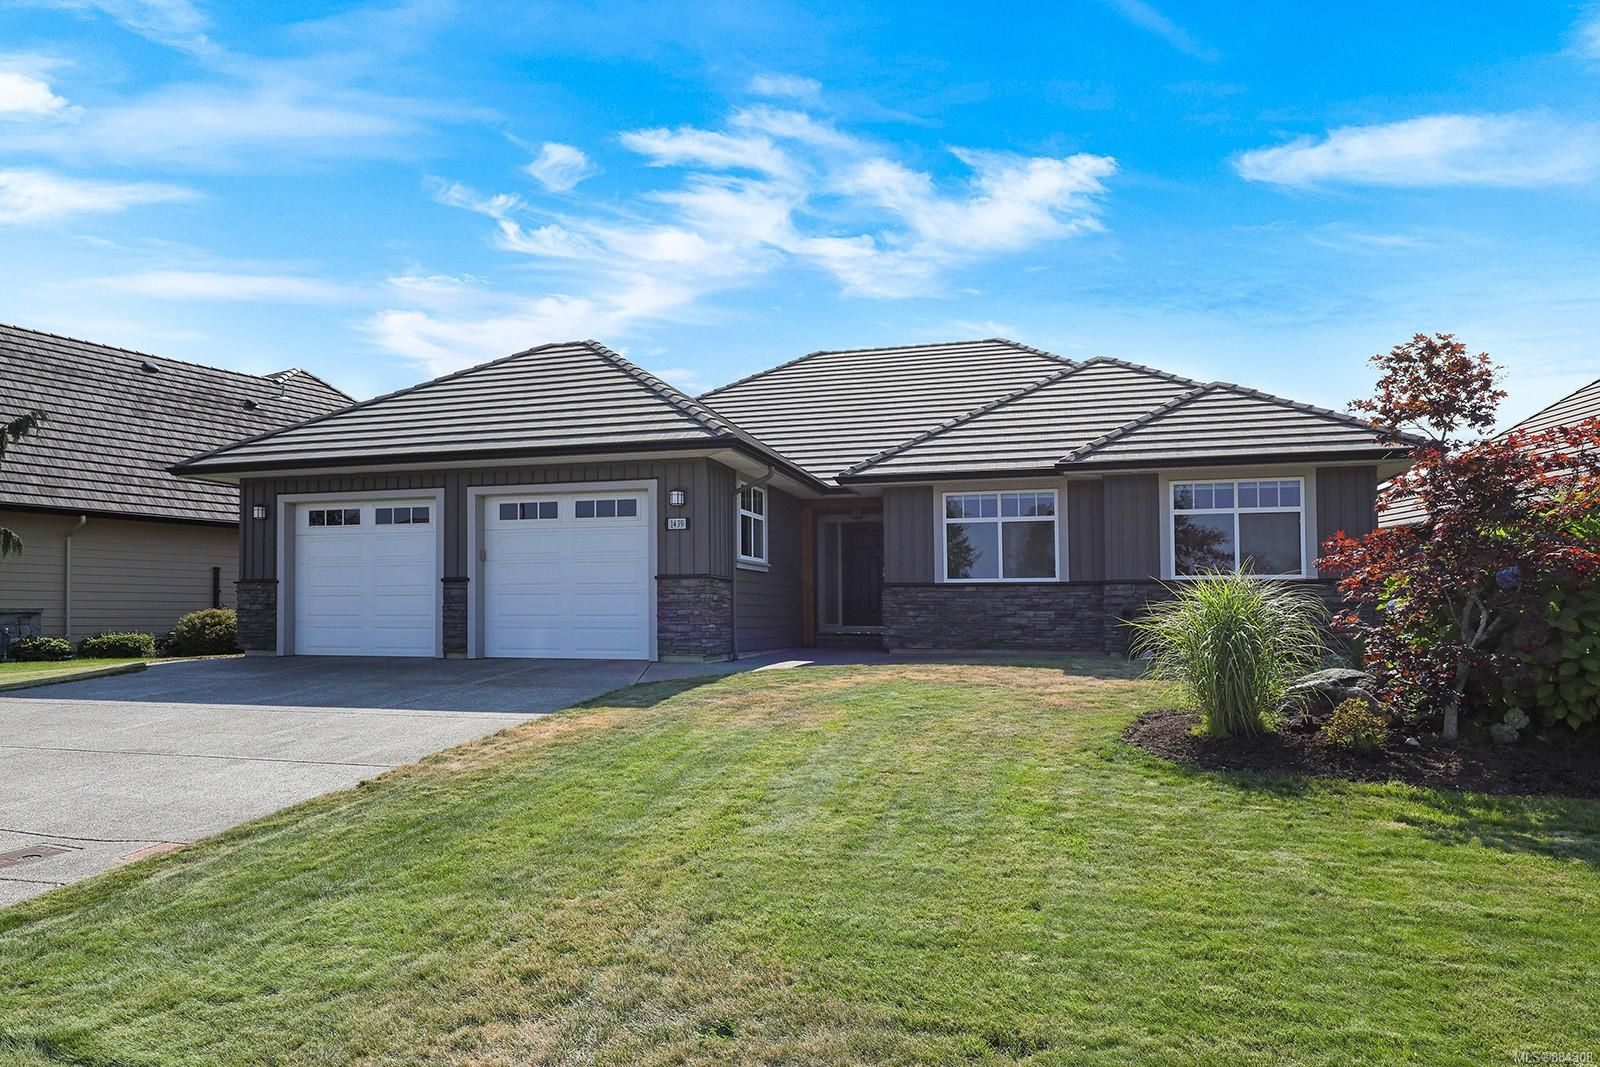 Main Photo: 1439 Crown Isle Dr in : CV Crown Isle House for sale (Comox Valley)  : MLS®# 884308